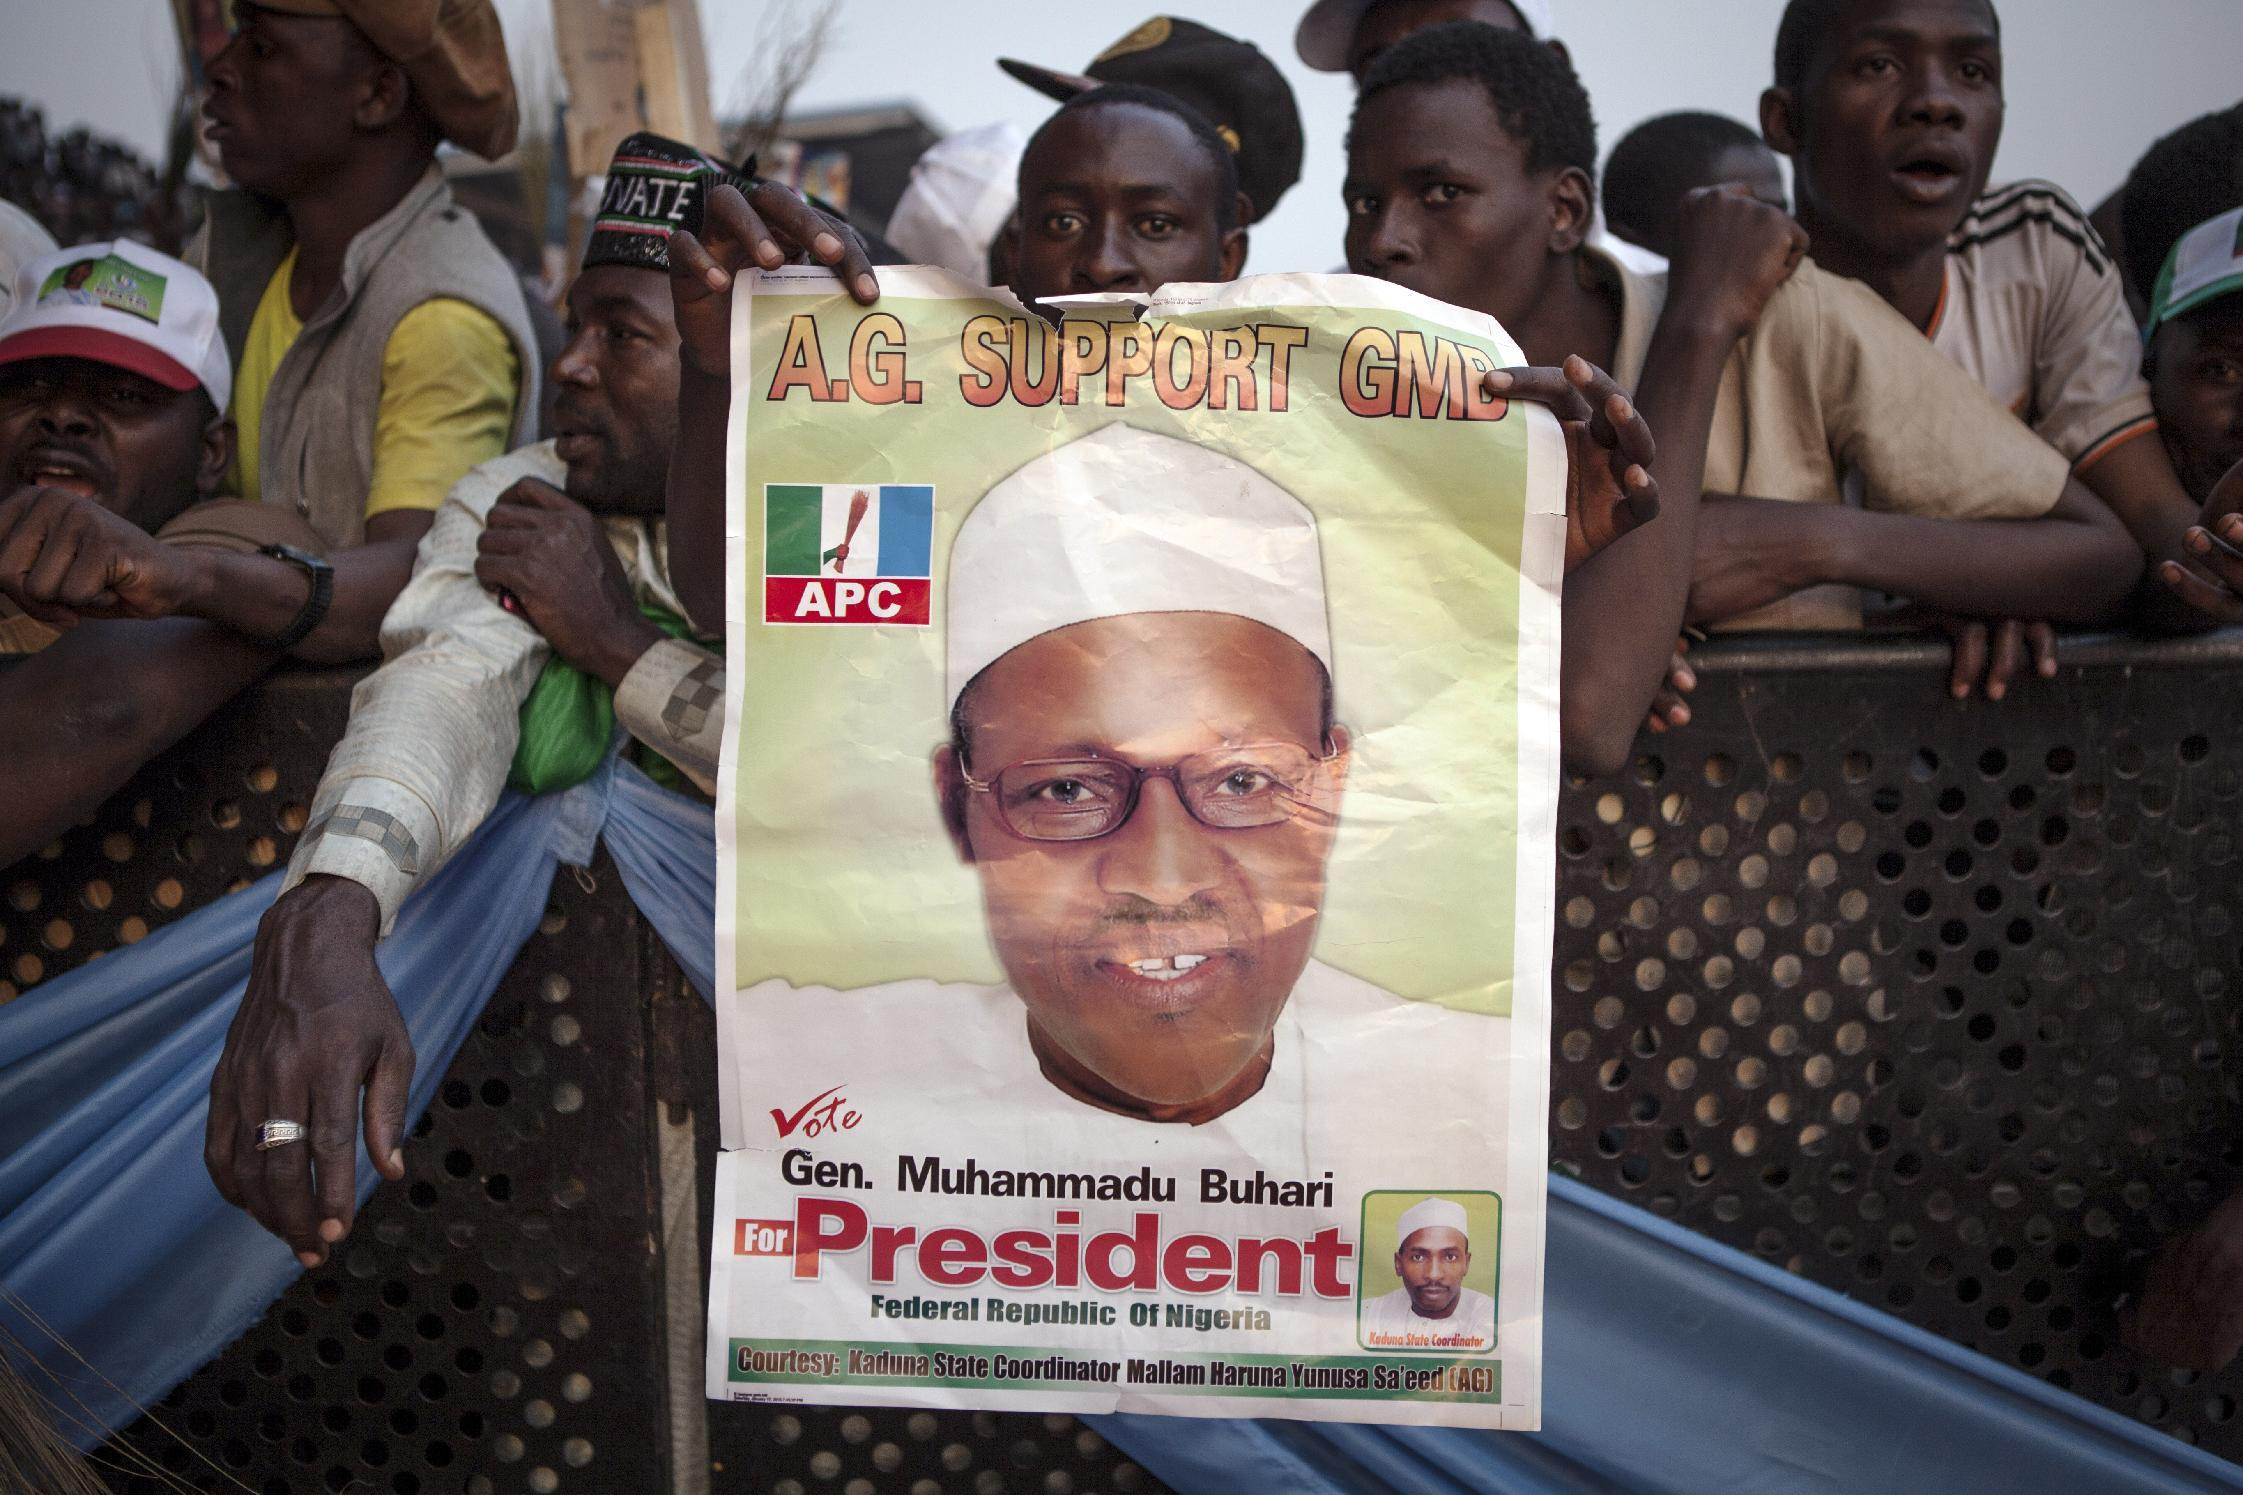 Nigeria vote delay would be Boko Haram 'victory': opposition